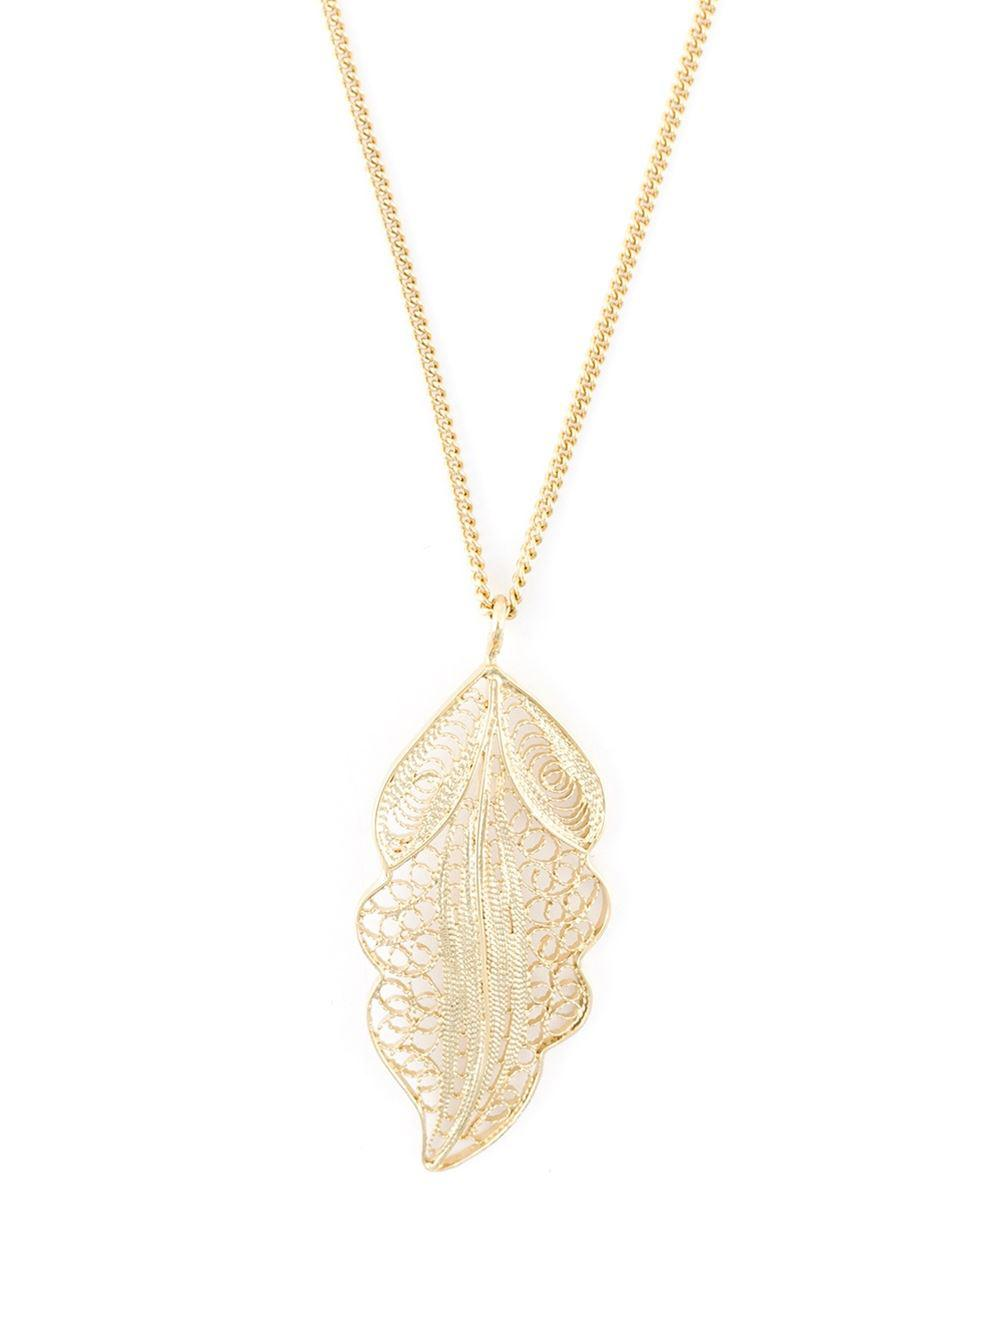 Wouters & Hendrix Filigree Leaf Pendant Necklace in Metallic (Blue)